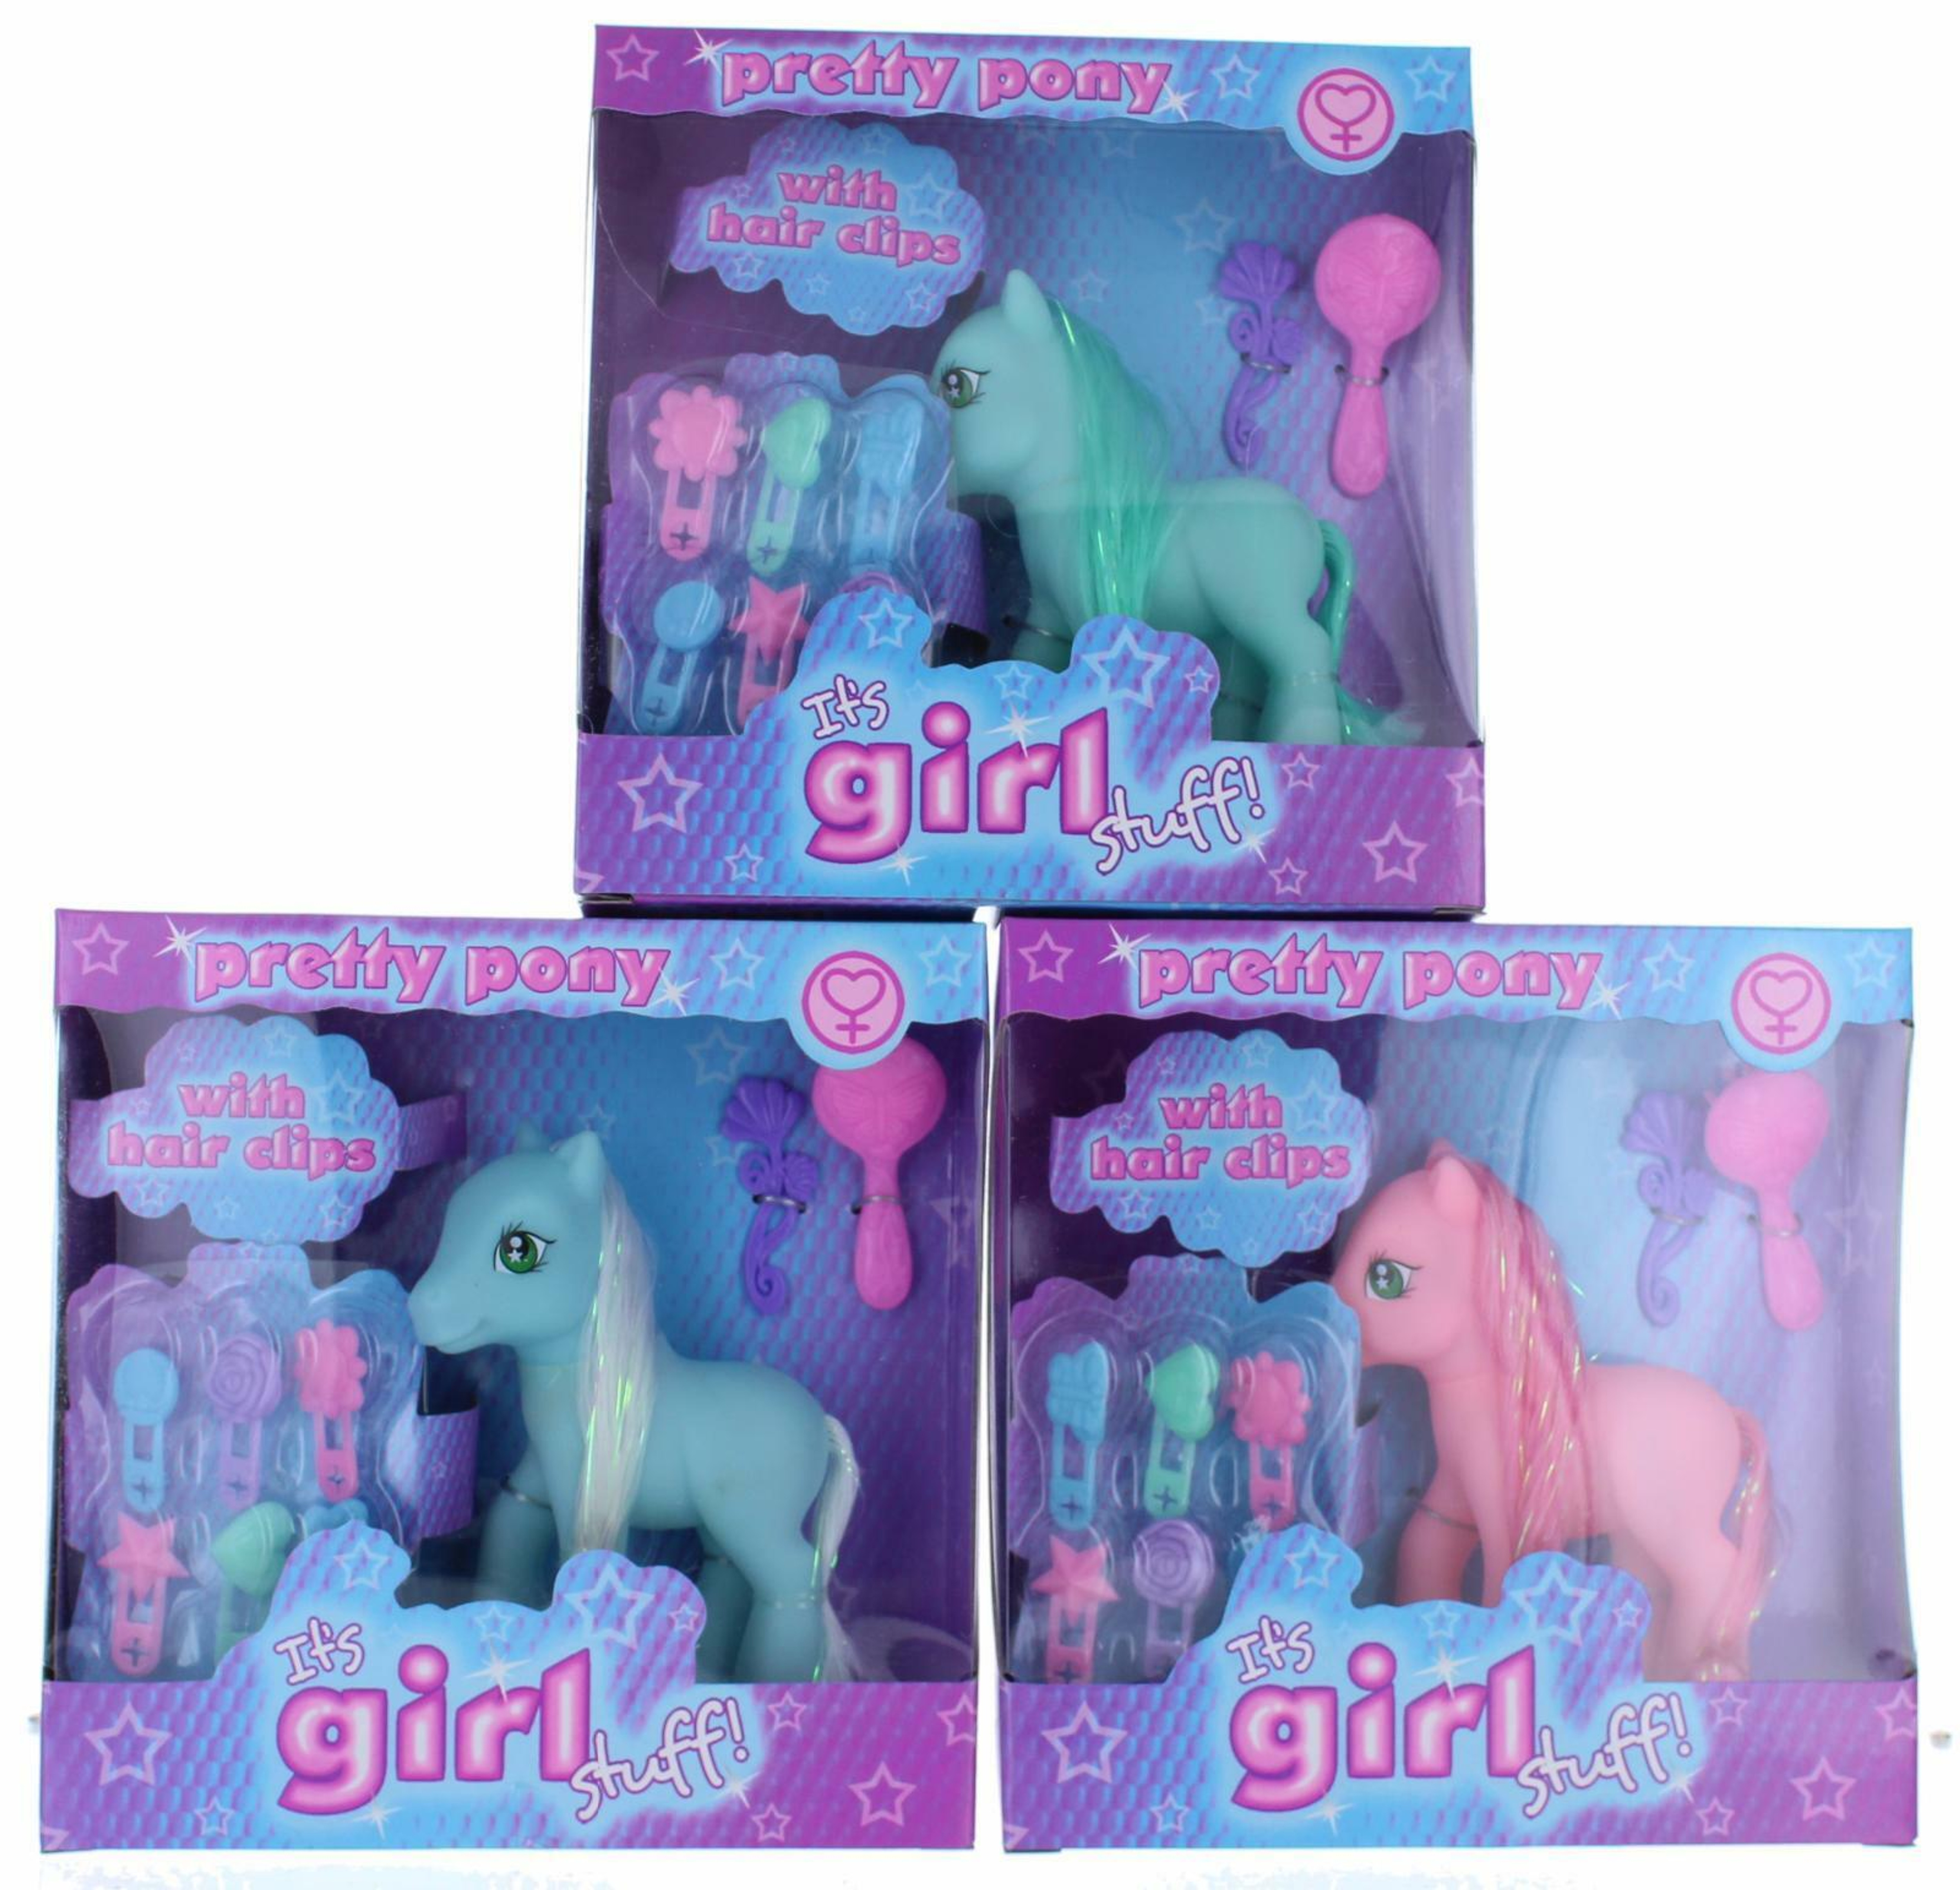 It/'s Girls Stuff Pack of 3 Fairy Ponies 2 Assorted Stocking Filler Gift Children